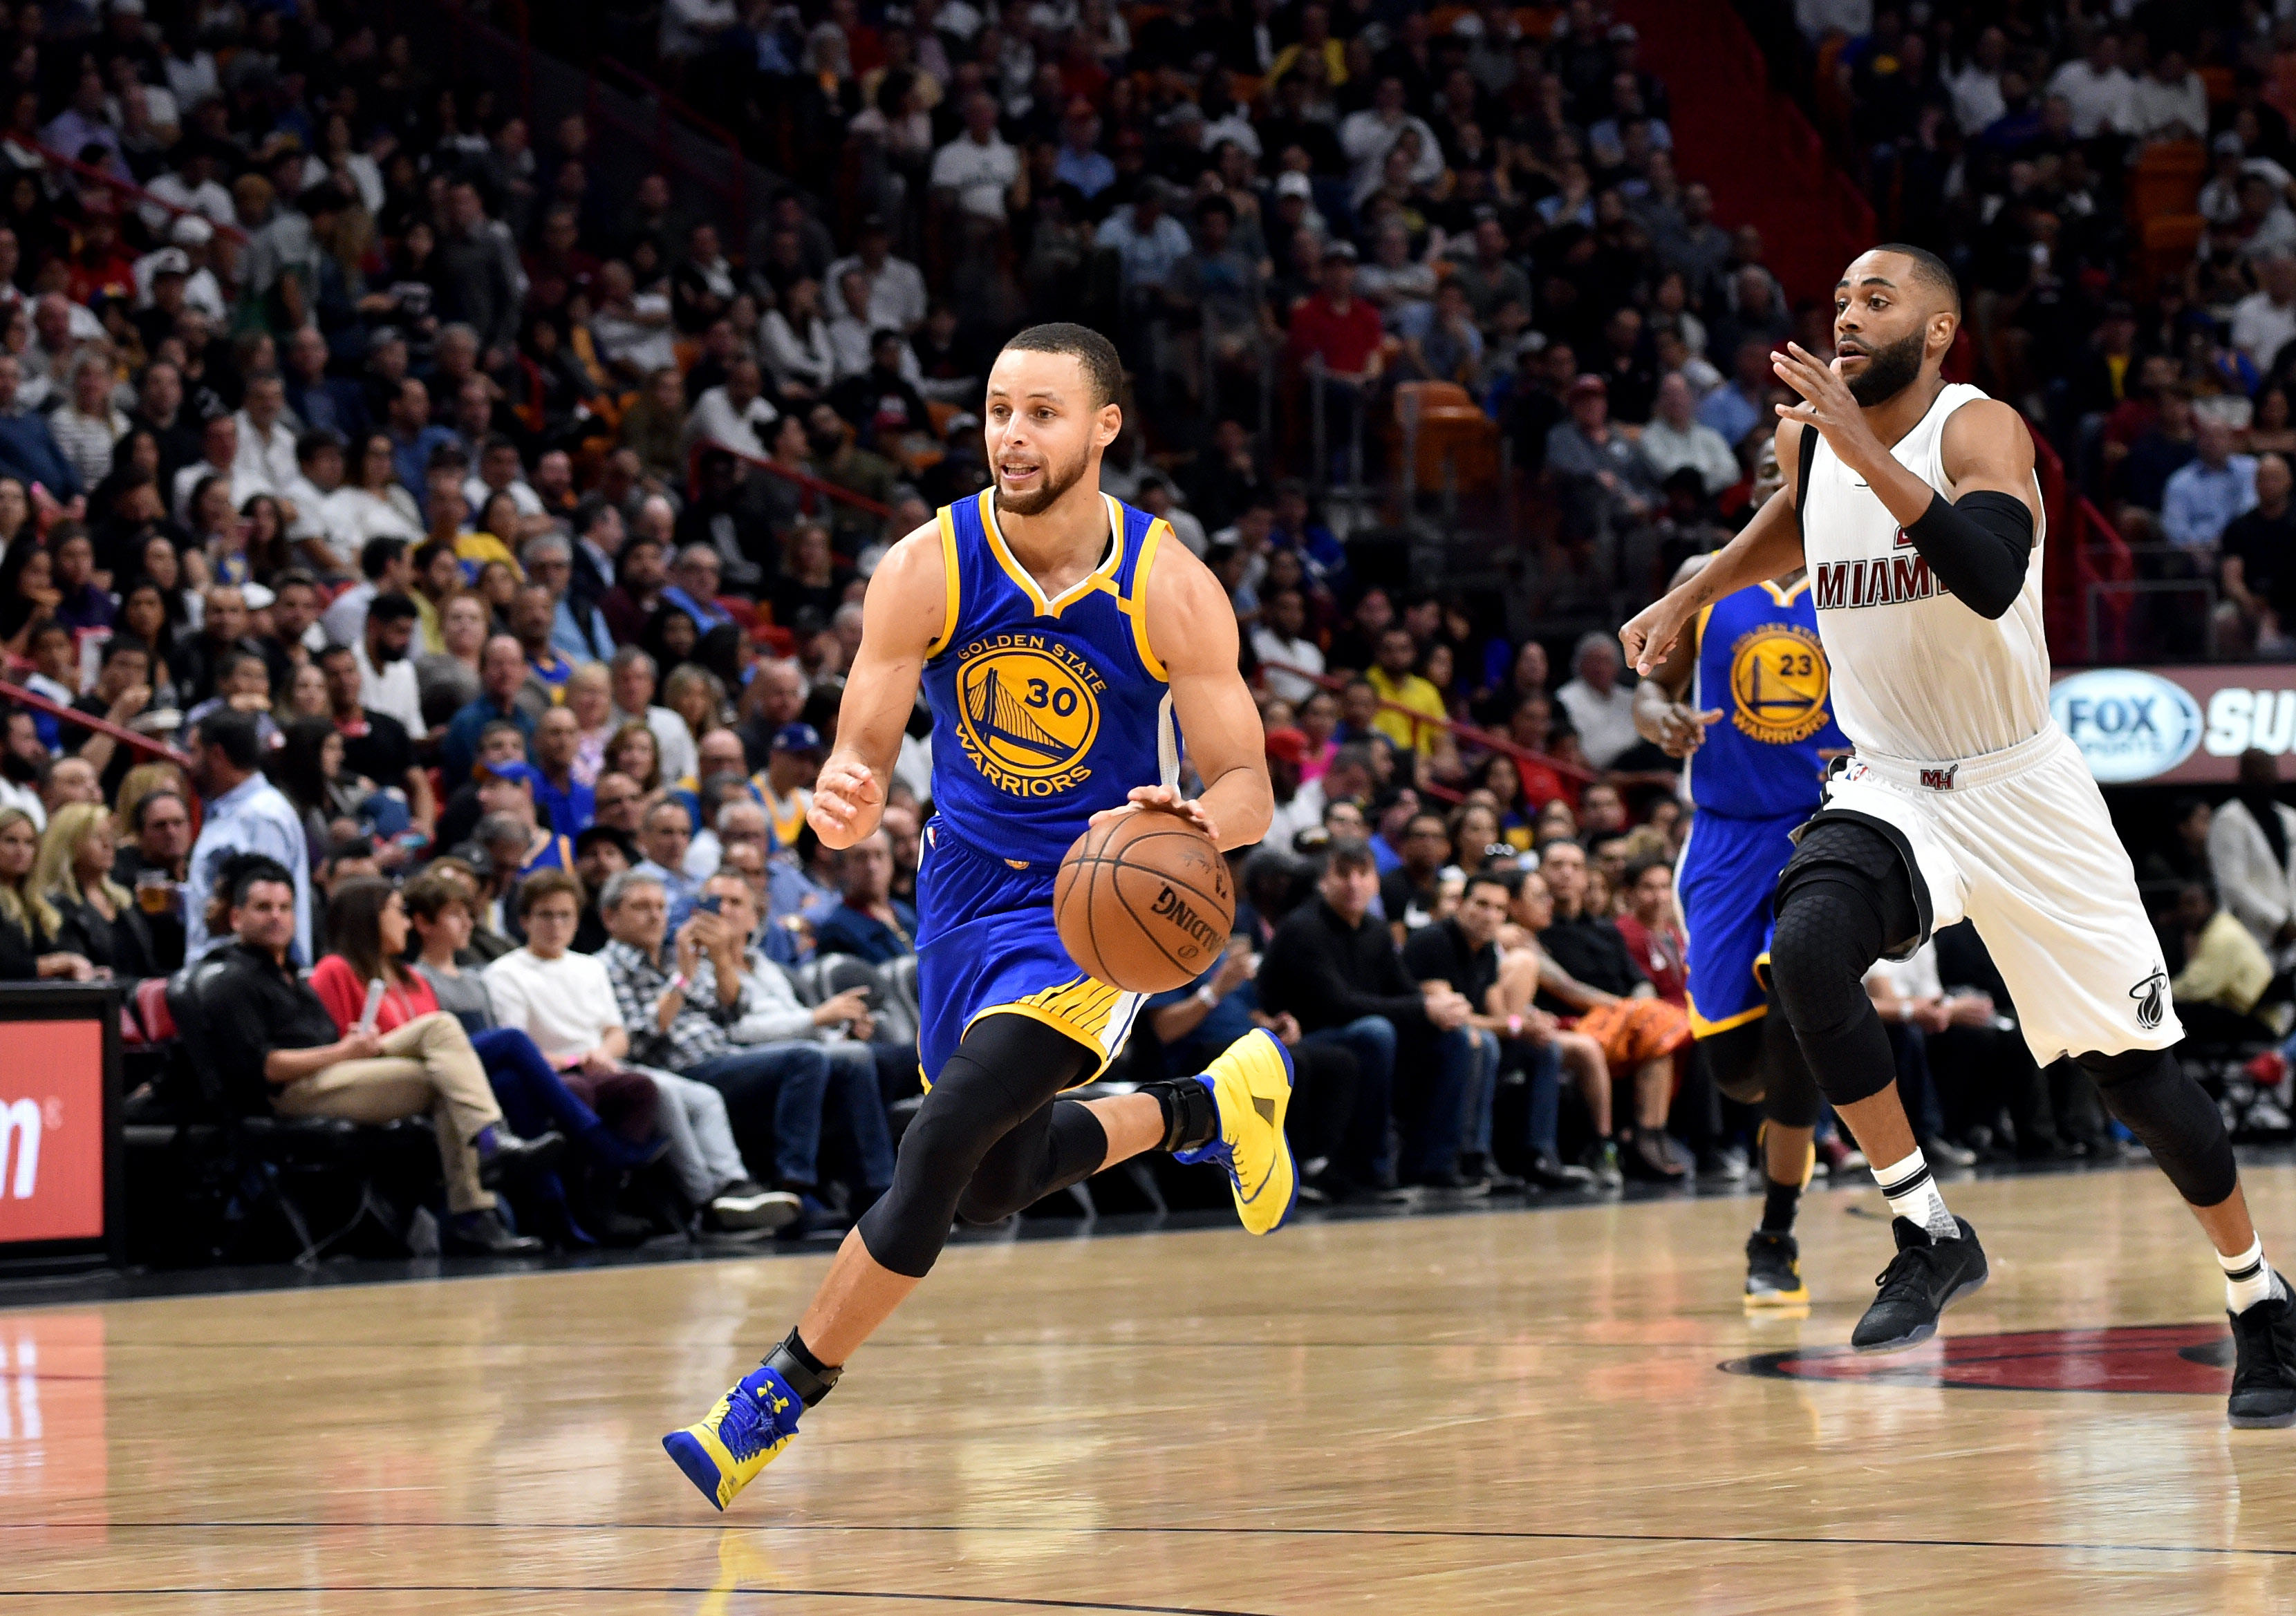 Jan 23, 2017; Miami, FL, USA; Golden State Warriors guard Stephen Curry (30) dribbles the ball up court as Miami Heat guard Wayne Ellington (2) gives chase during the second half at American Airlines Arena. The Heat defeated the Golden State Warriors 105-102. Mandatory Credit: Steve Mitchell-USA TODAY Sports